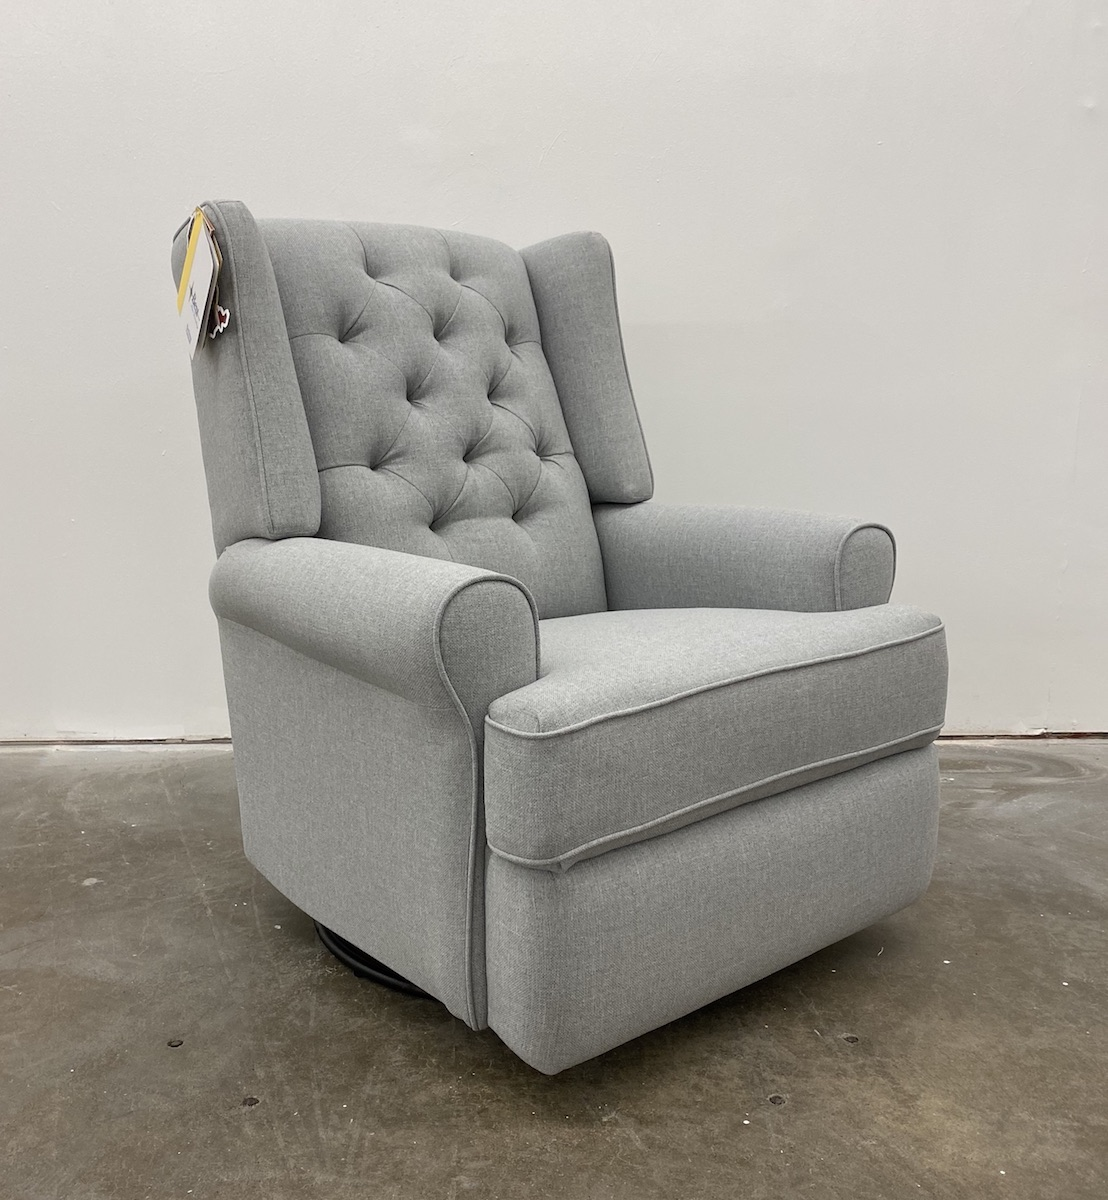 Best Chairs Kendra Tufted Swivel Glider Recliner in Dove Grey